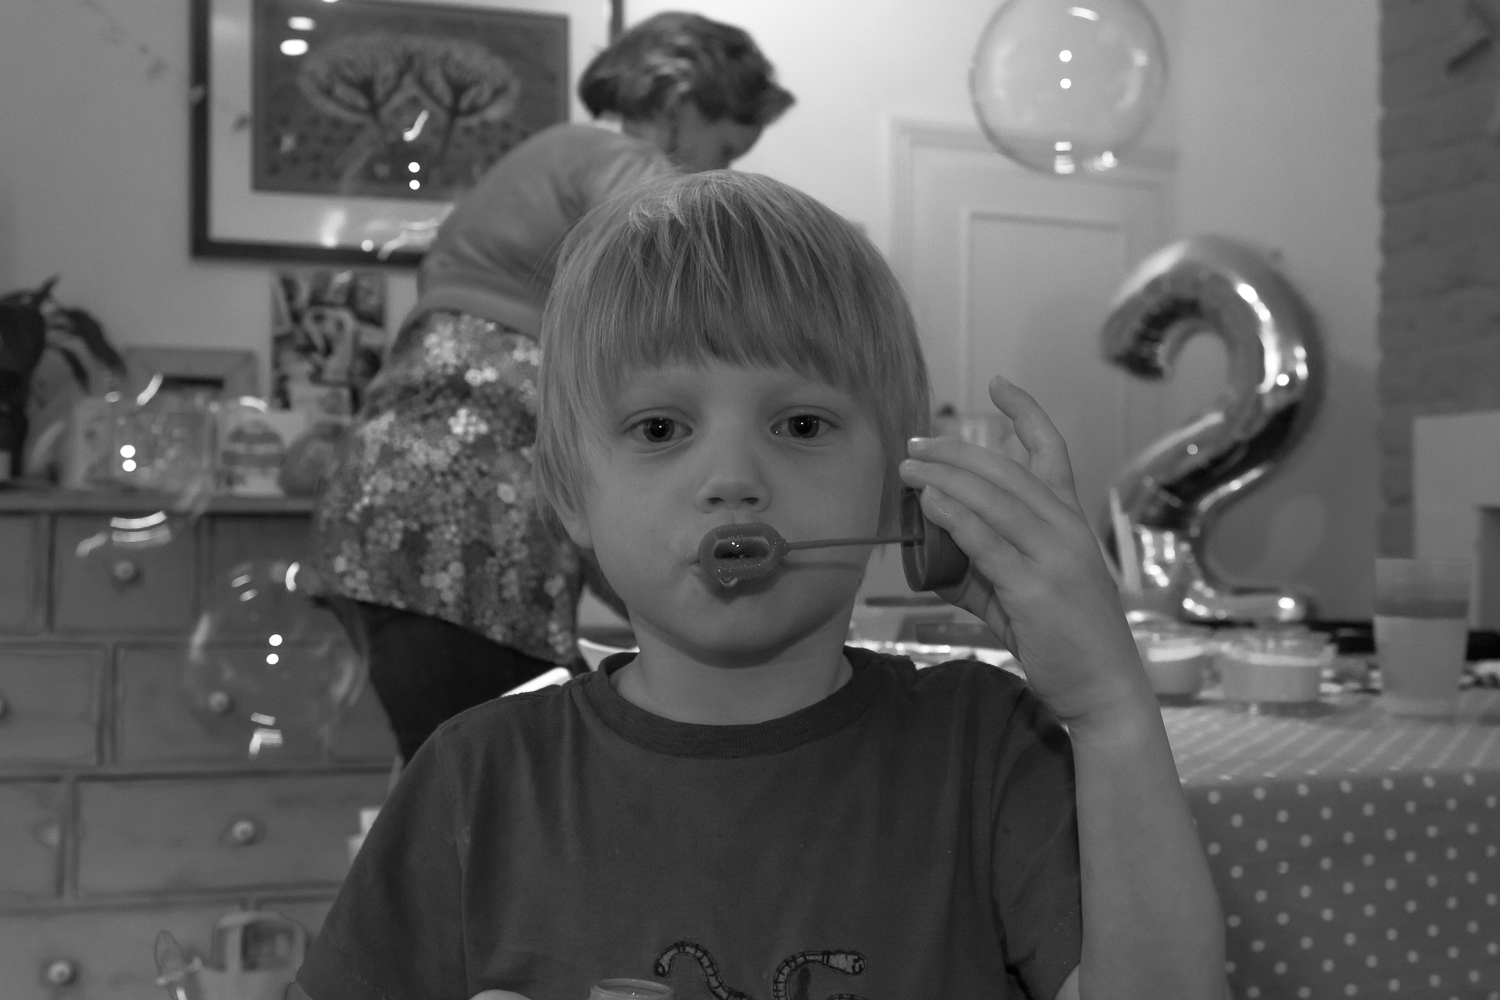 A young boy blows bubbles at the camer, while a grandmother tidies up after the party in the background